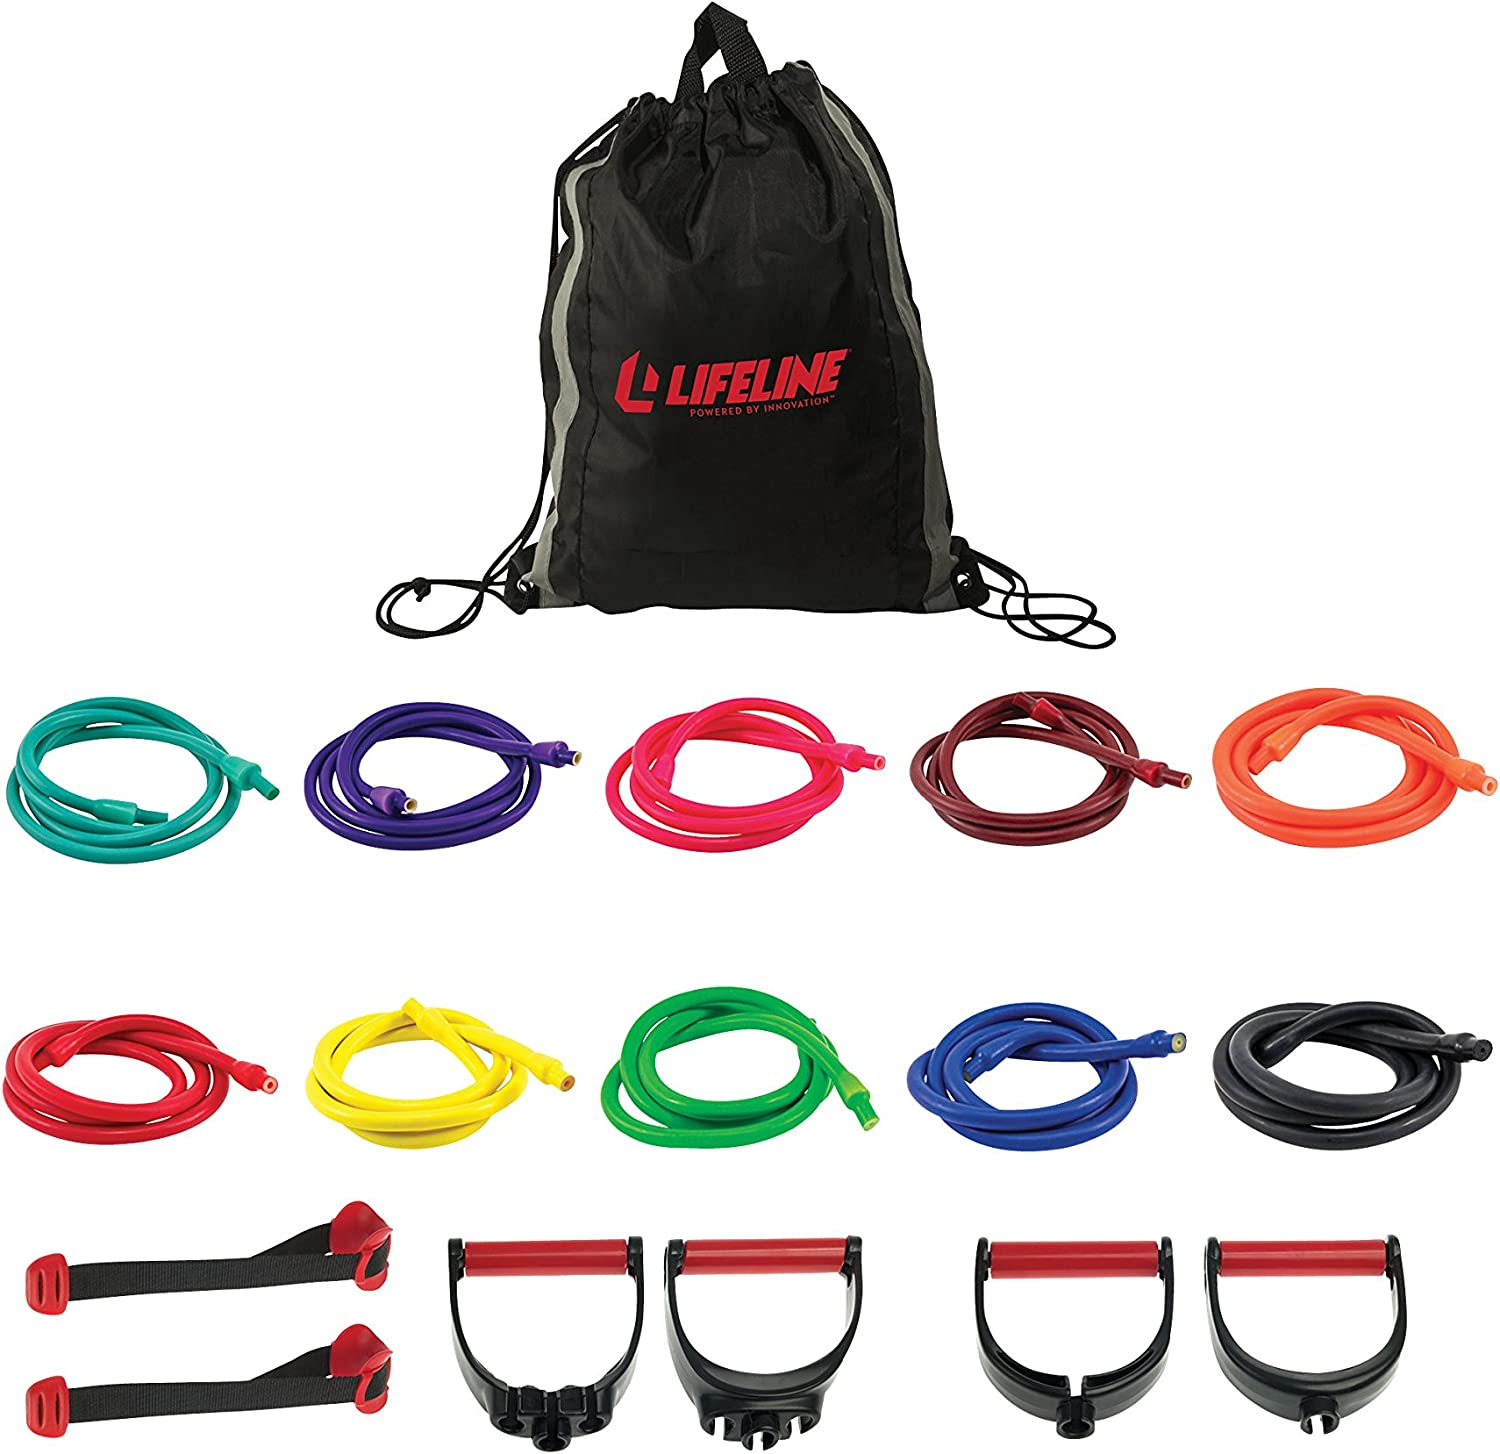 Lifeline Resistance Trainer Kit with 10lb to 100lb Adjustable Resistance Level Bands for More Workout Options Includes Triple Grip Handles, Door Anchor, 5ft Exercise Tubes and Carry Bag